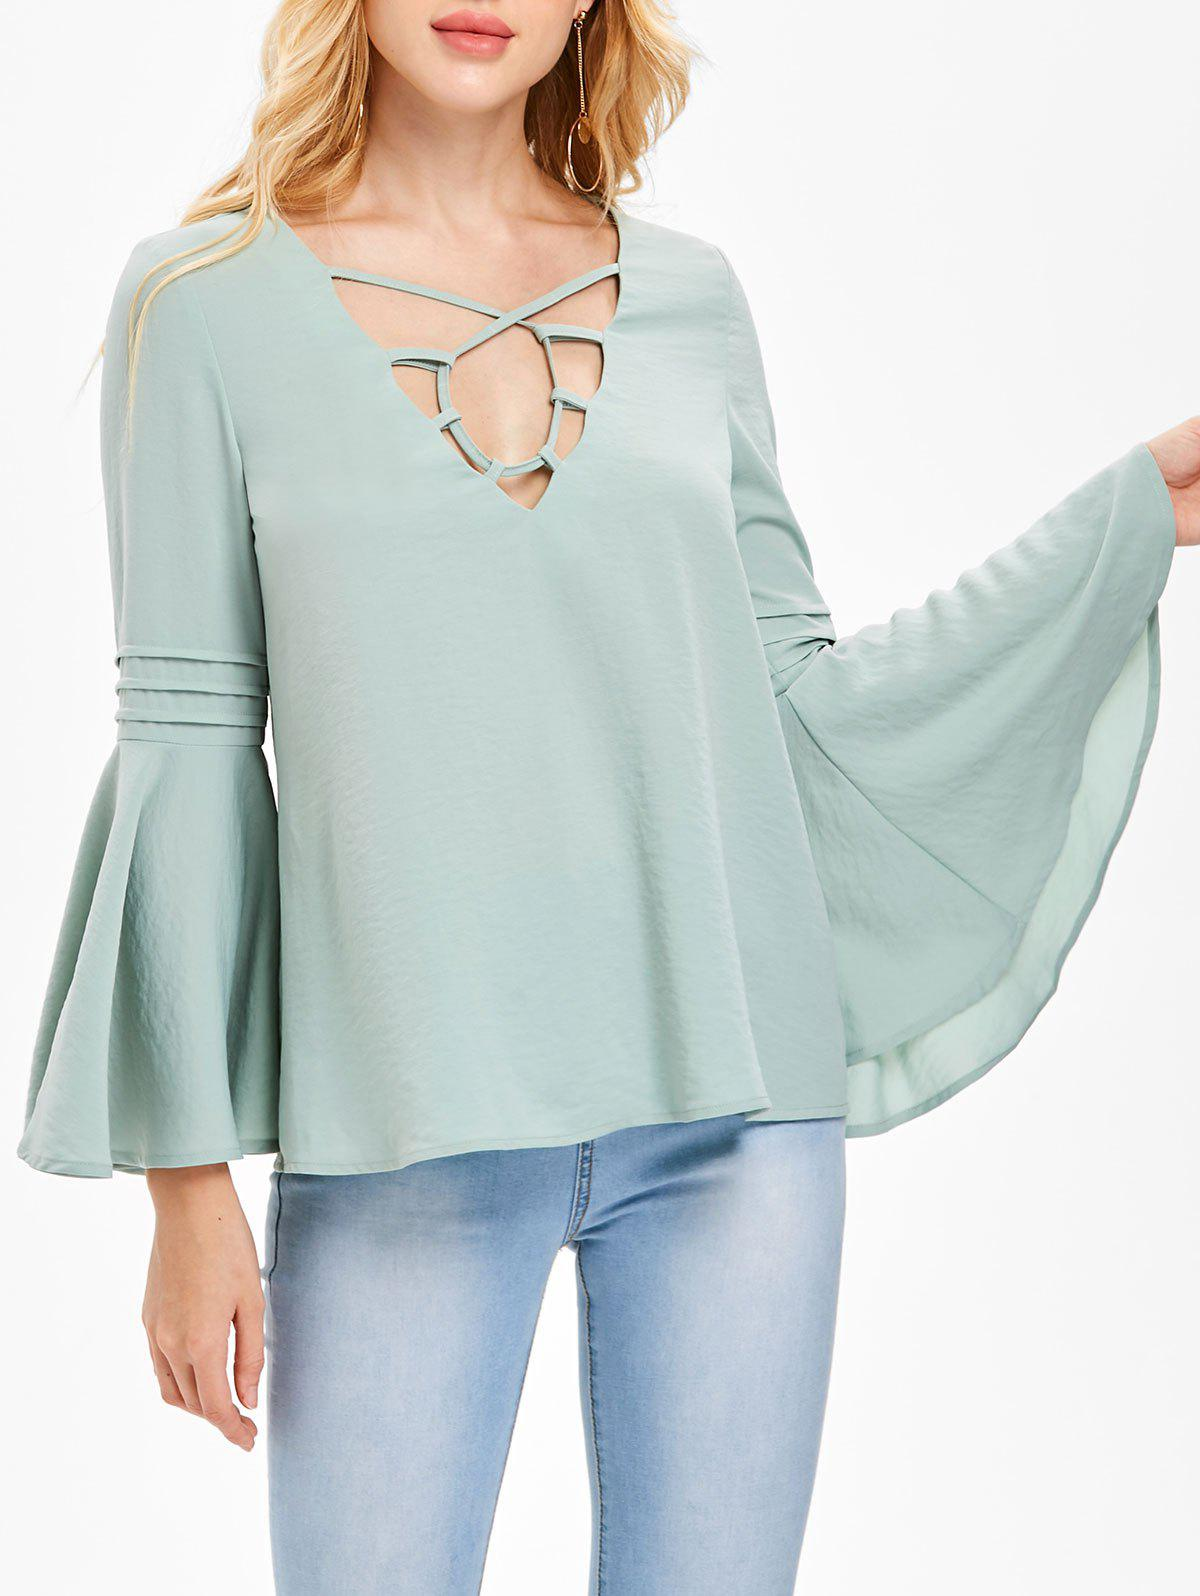 V Neck Strappy Flare Sleeve Top - BLUE GREEN M